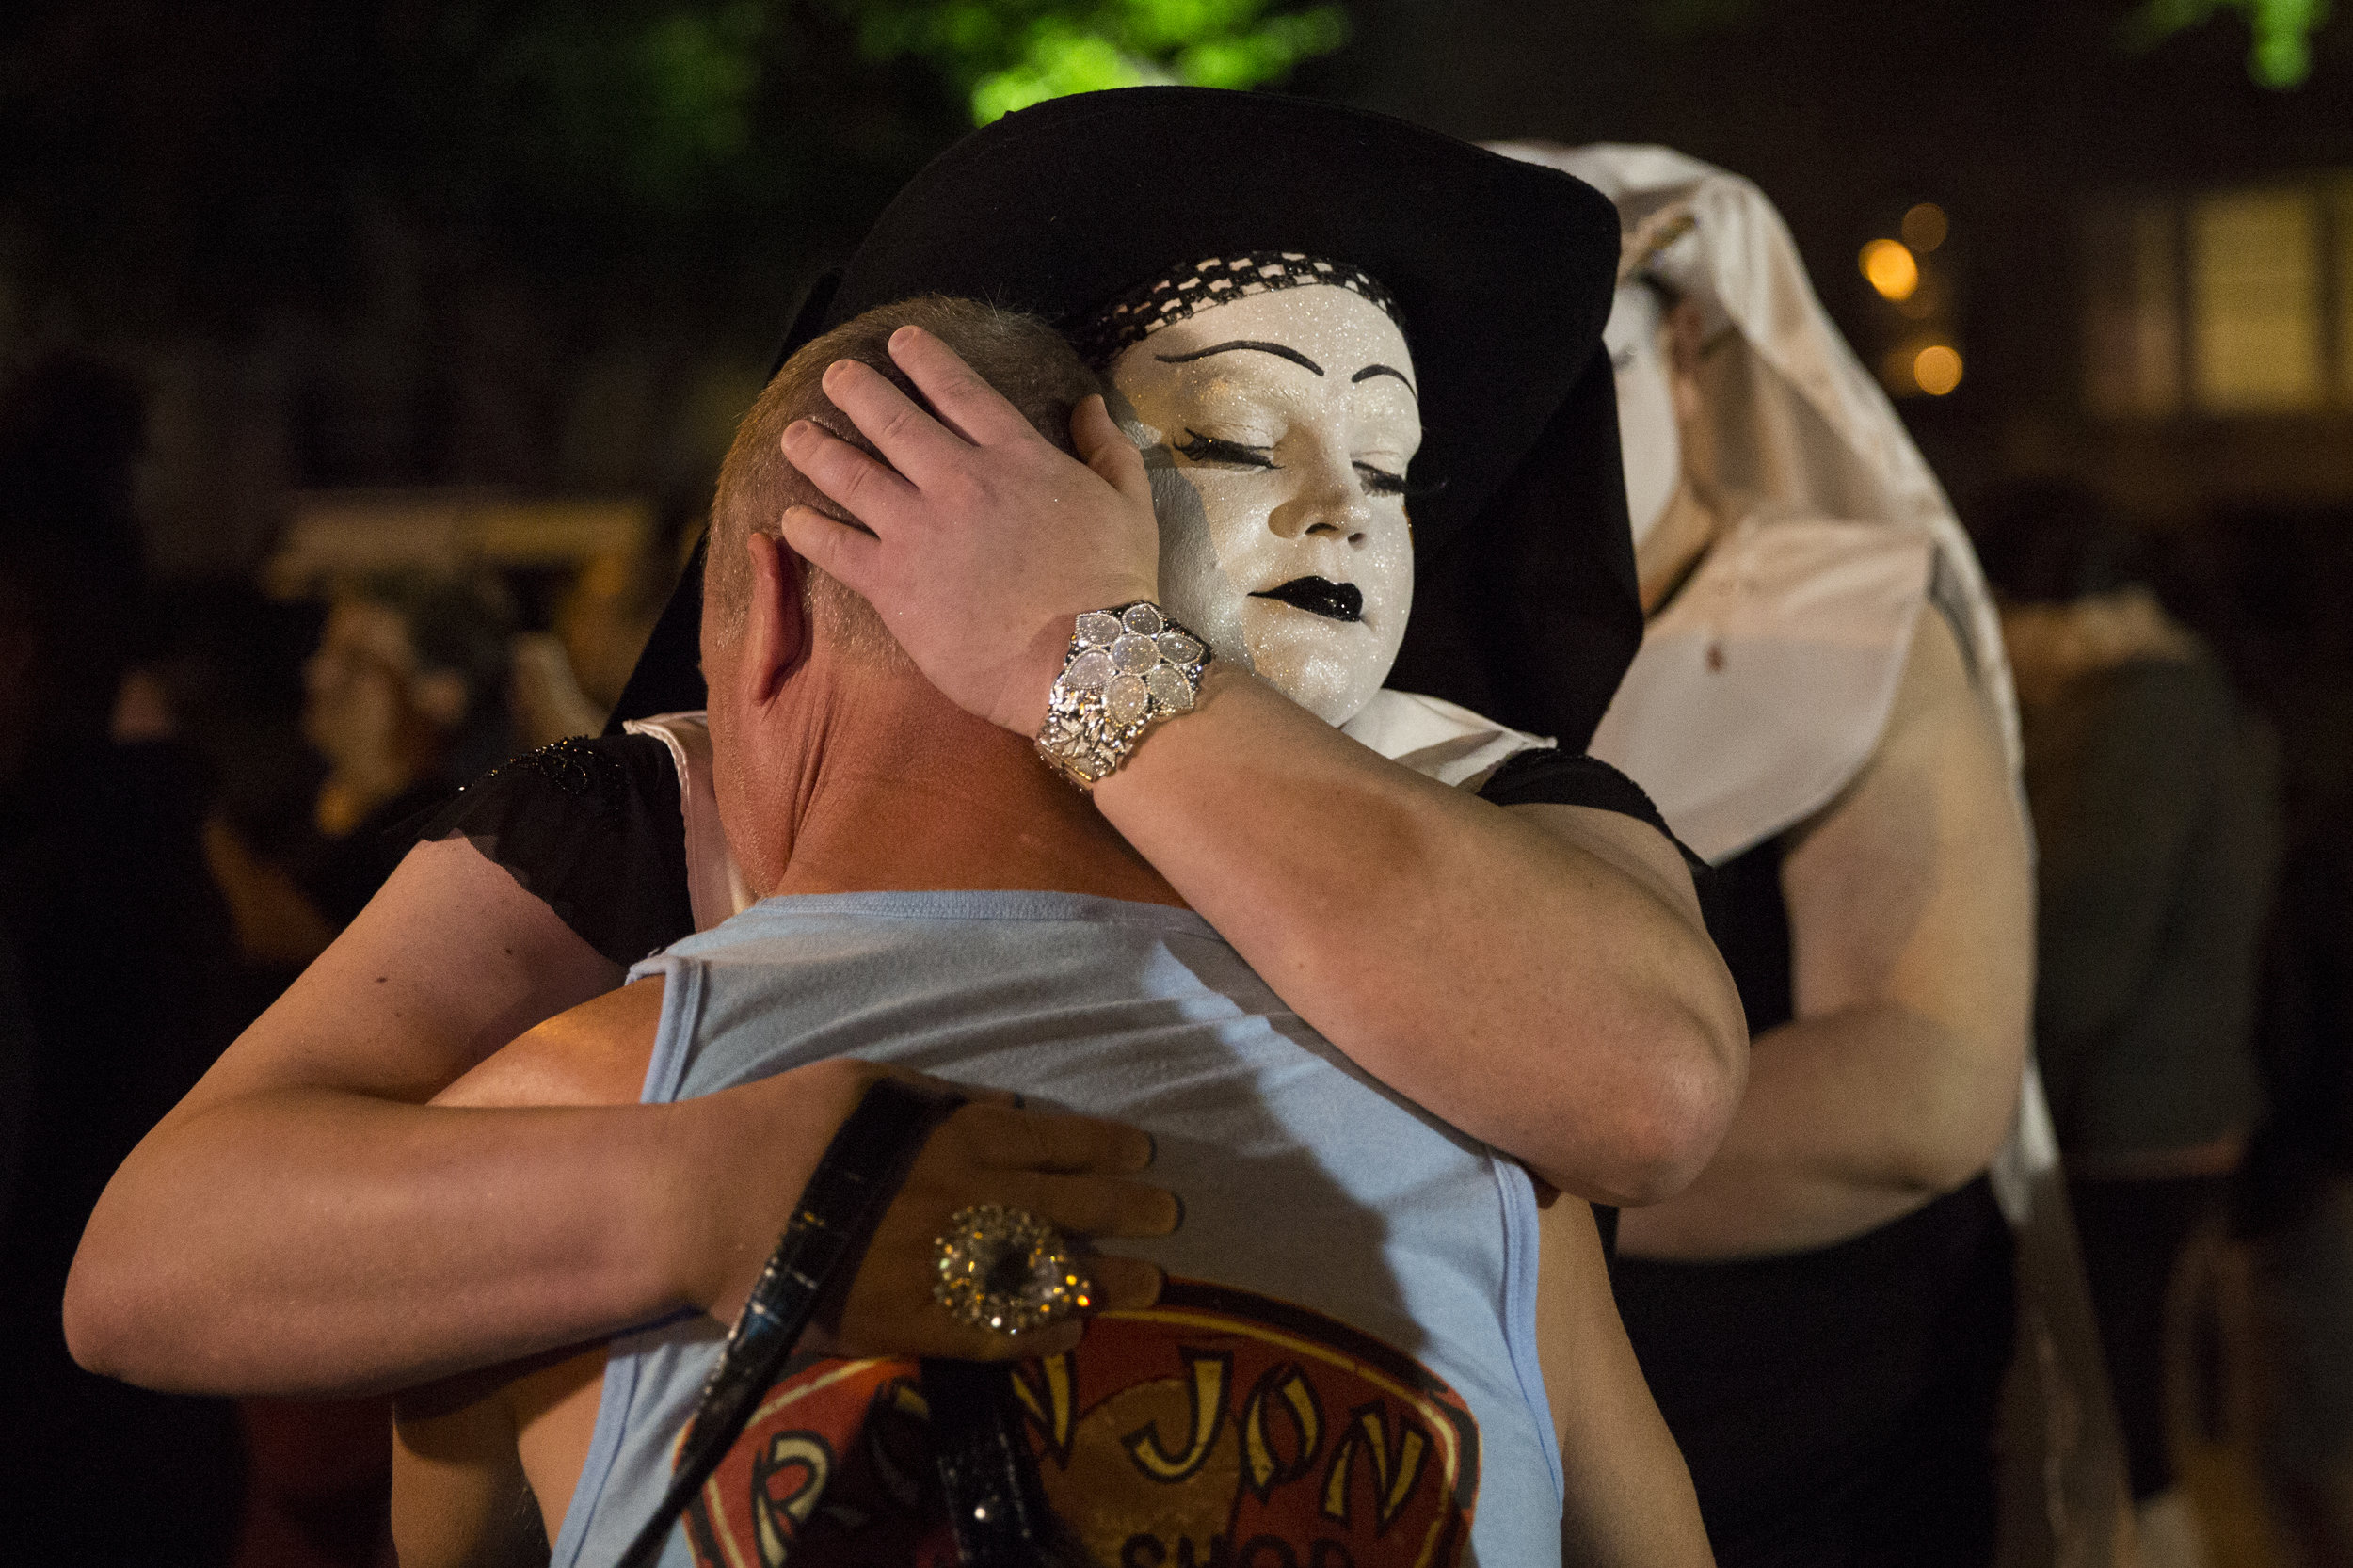 A man is comforted as he is embraced by a Sister of Perpetual Indulgence at a memorial for those killed in the June 2016 Orlando Pulse nightclub massacre.